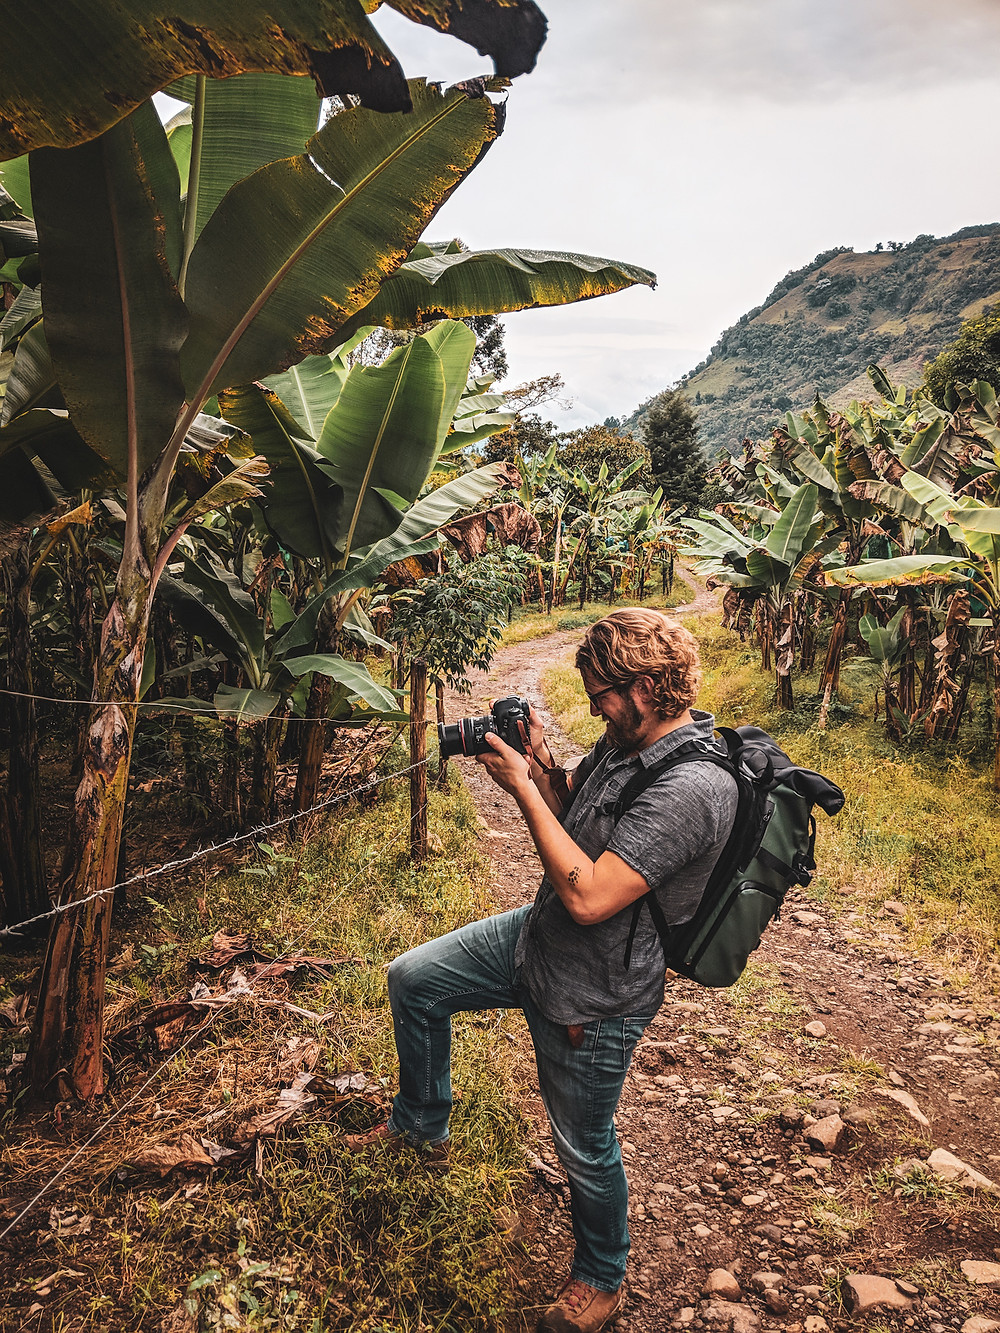 Taking photos while on a hike in Jardin, Colombia.